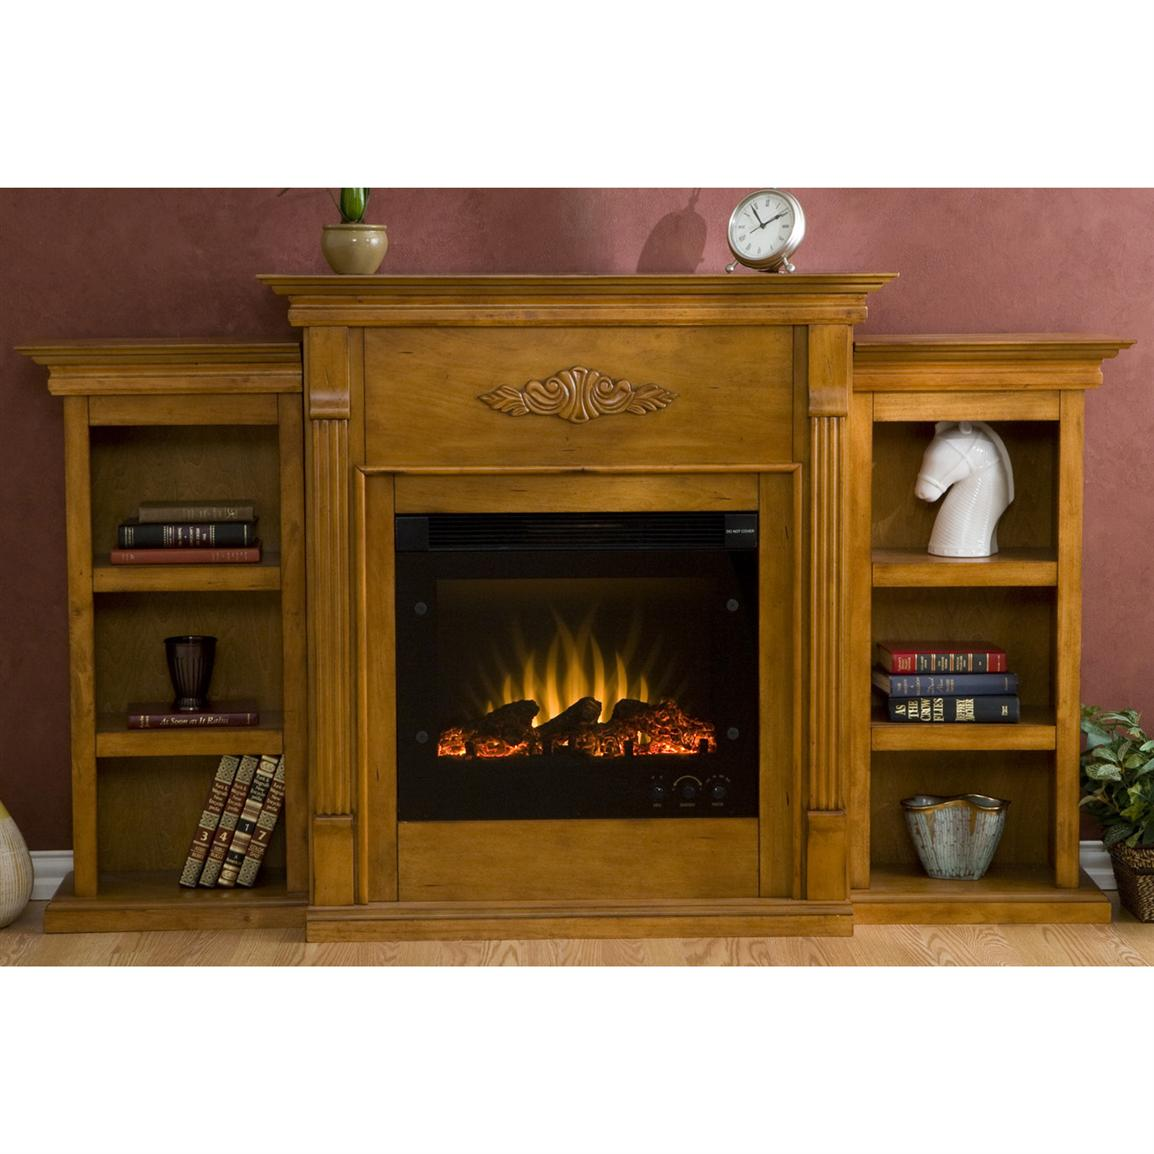 Tennyson Bookcase Electric Fireplace Southern Enterprises Inc Tennyson Electric Fireplace With